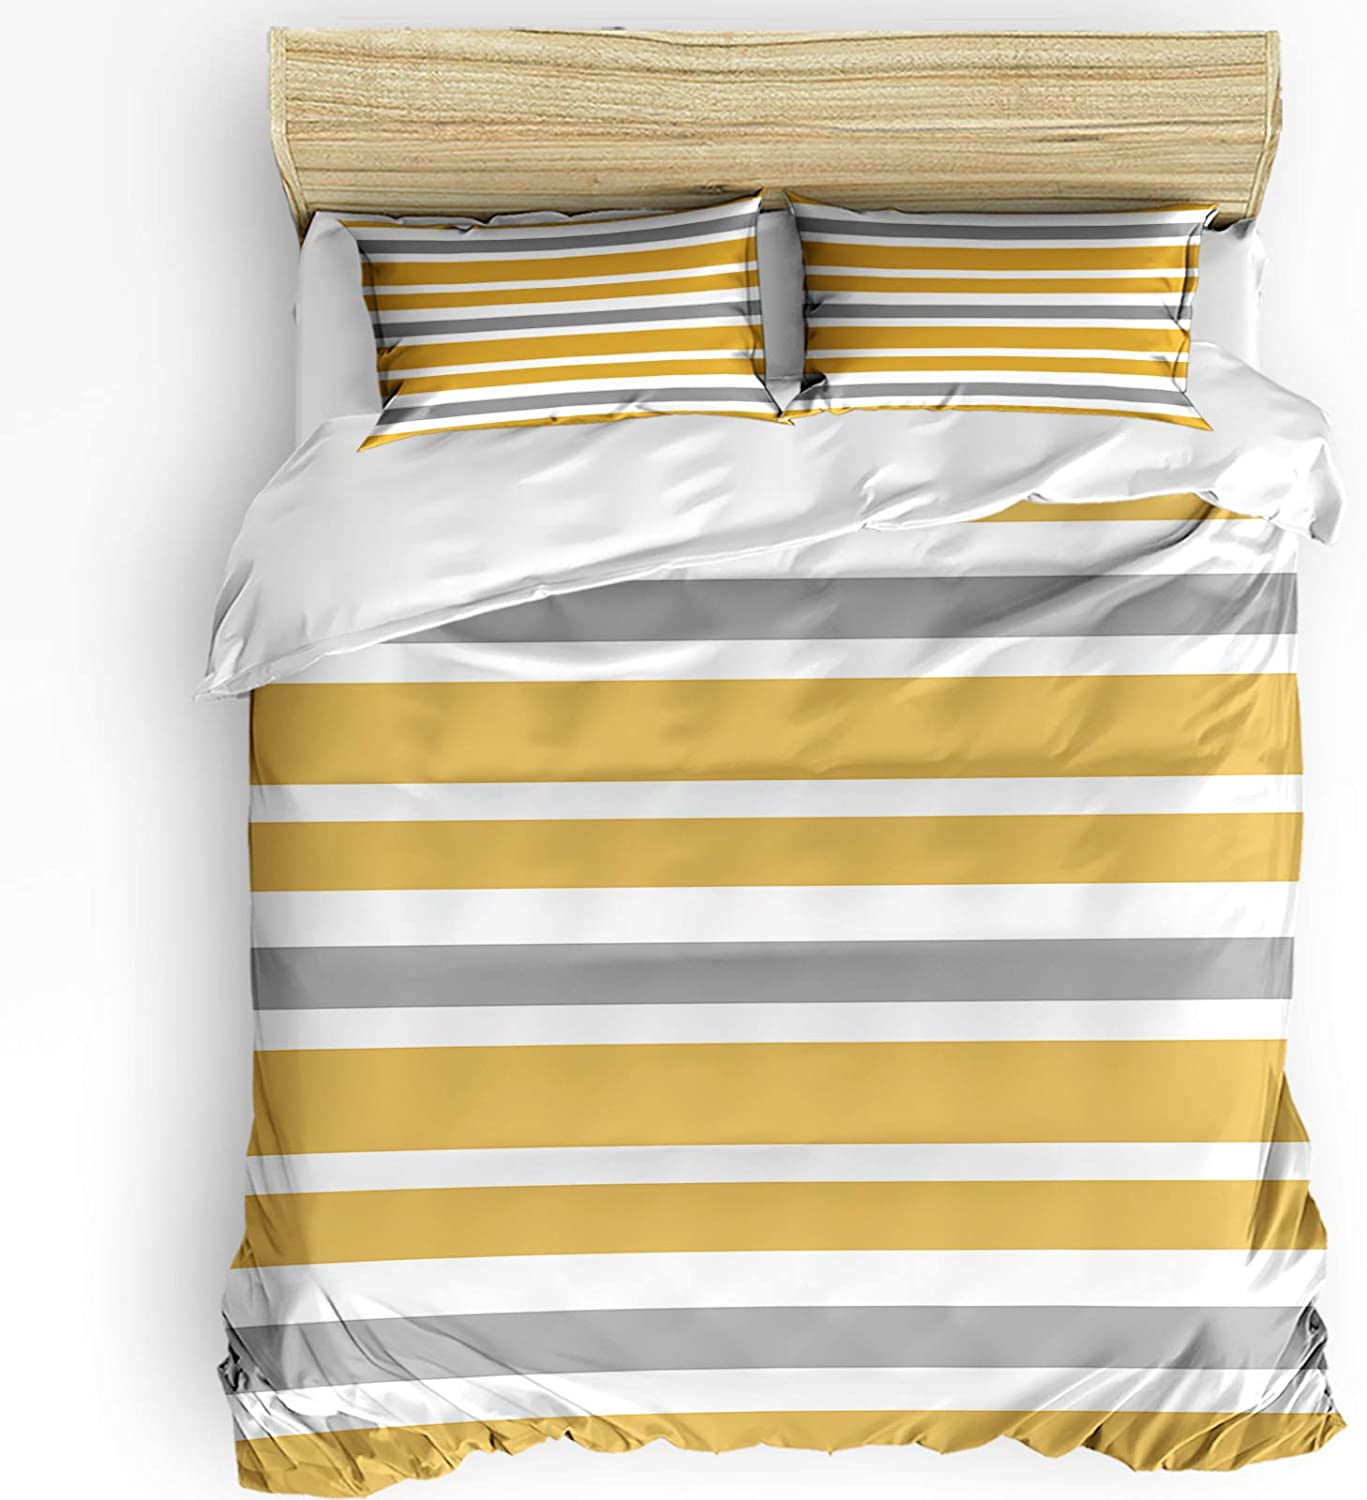 Candescence Geometric Duvet Virginia Beach Mall Purchase Cover Set 3 Polye Pieces Breathable